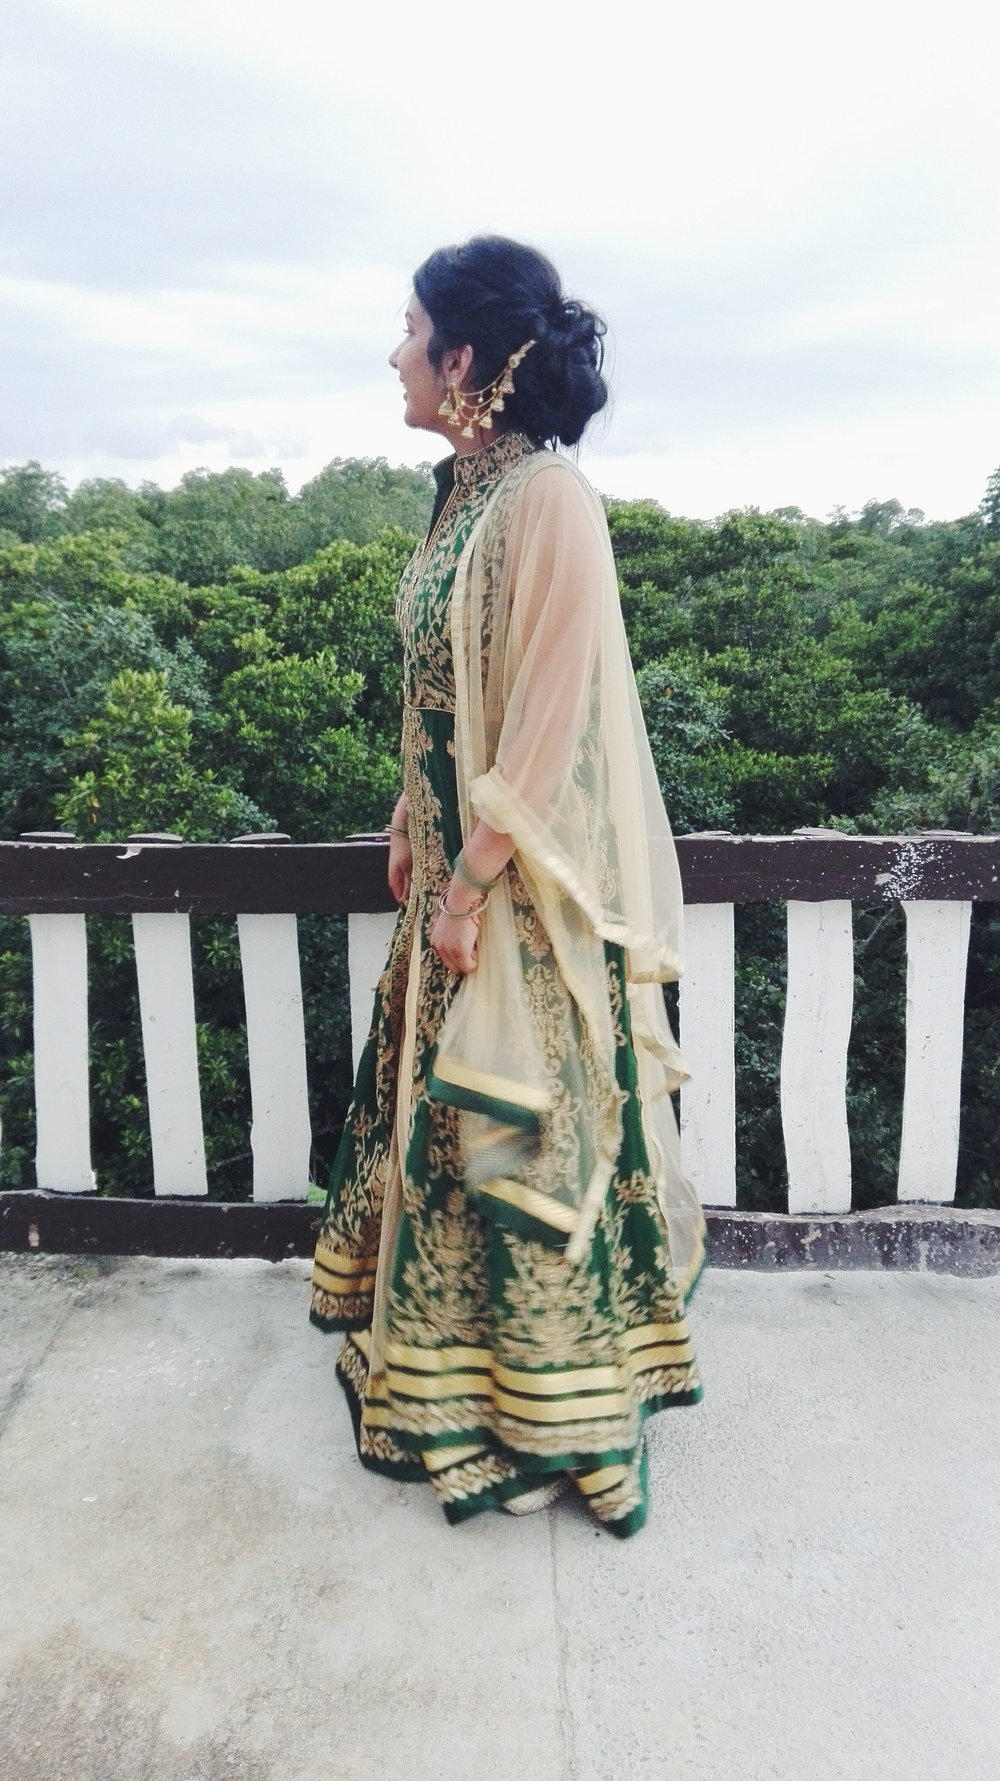 Haldi   Diwali look recycled for haldi ceremony. Absolutely in love with the multi-strand jhumkas or what shop owners like to call them, Bahubali earrings? For the day ceremony was wearing yellow (compulsory haldi colour), but deep green for night.